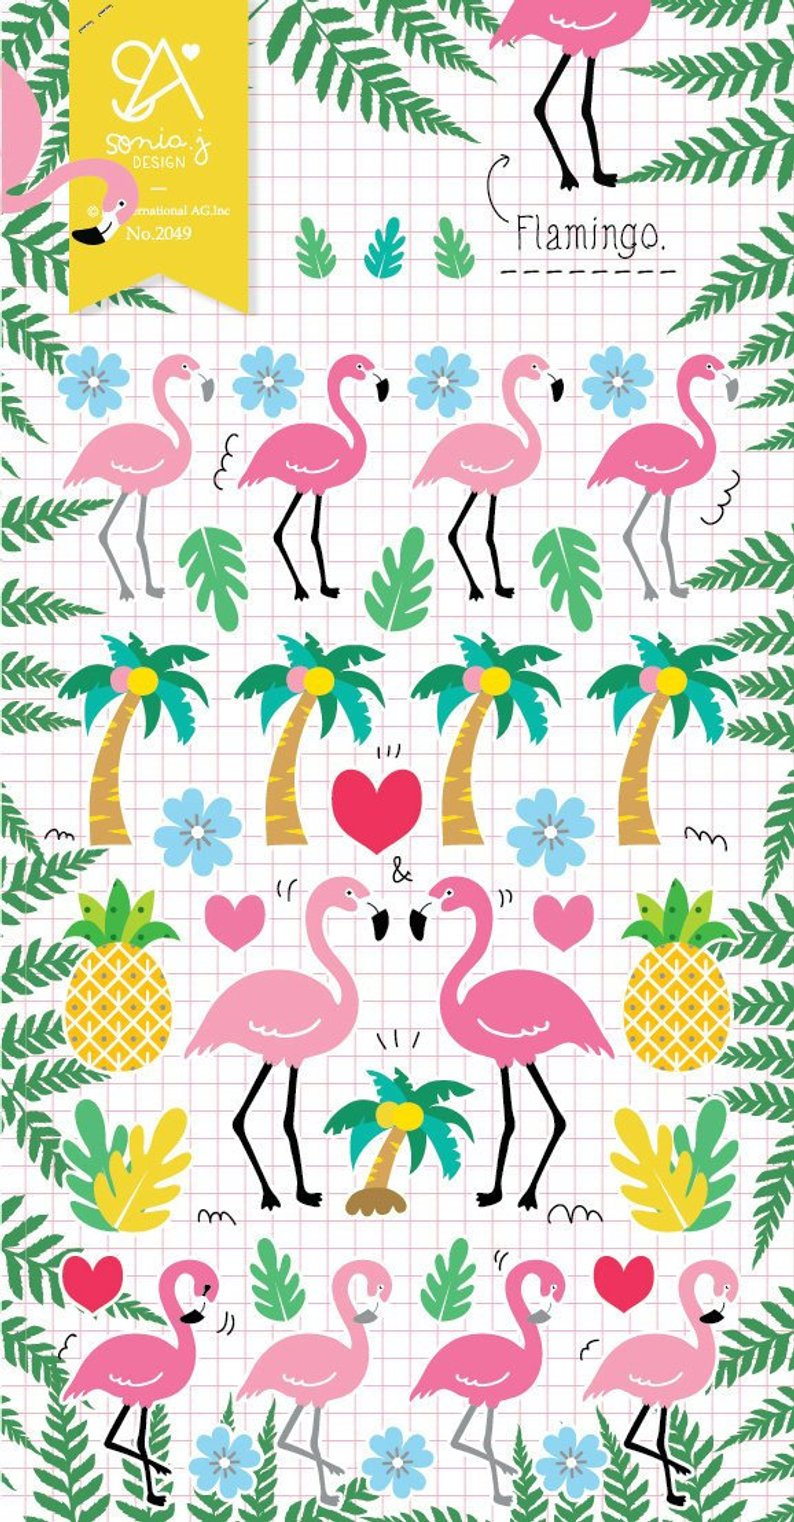 Love My Tapes Inc - Flamingo Stickers